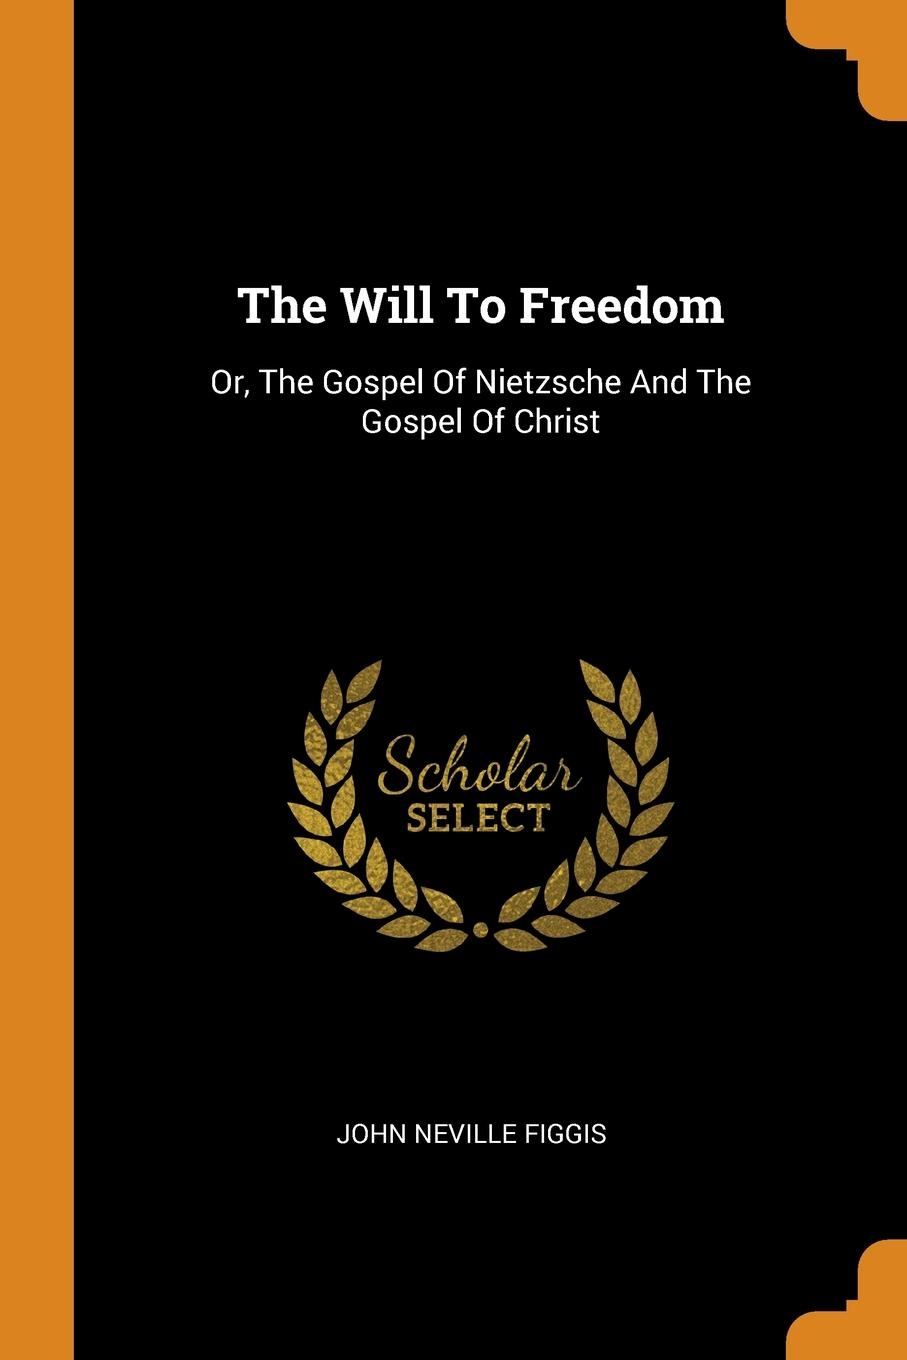 John Neville Figgis The Will To Freedom. Or, The Gospel Of Nietzsche And The Gospel Of Christ